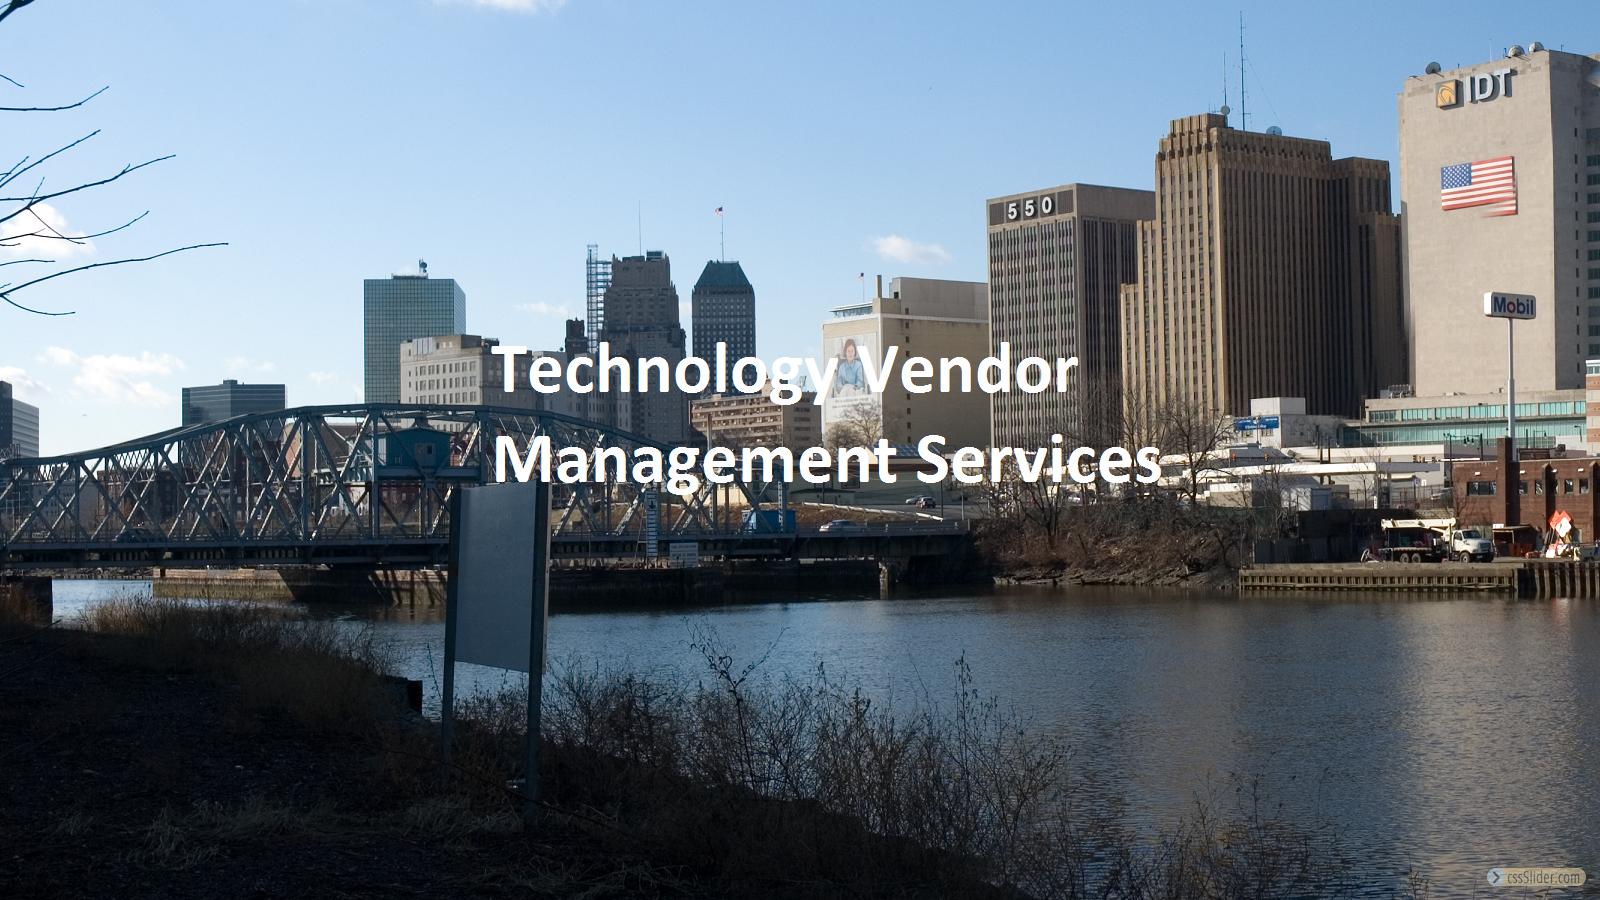 Technology Vendor Management